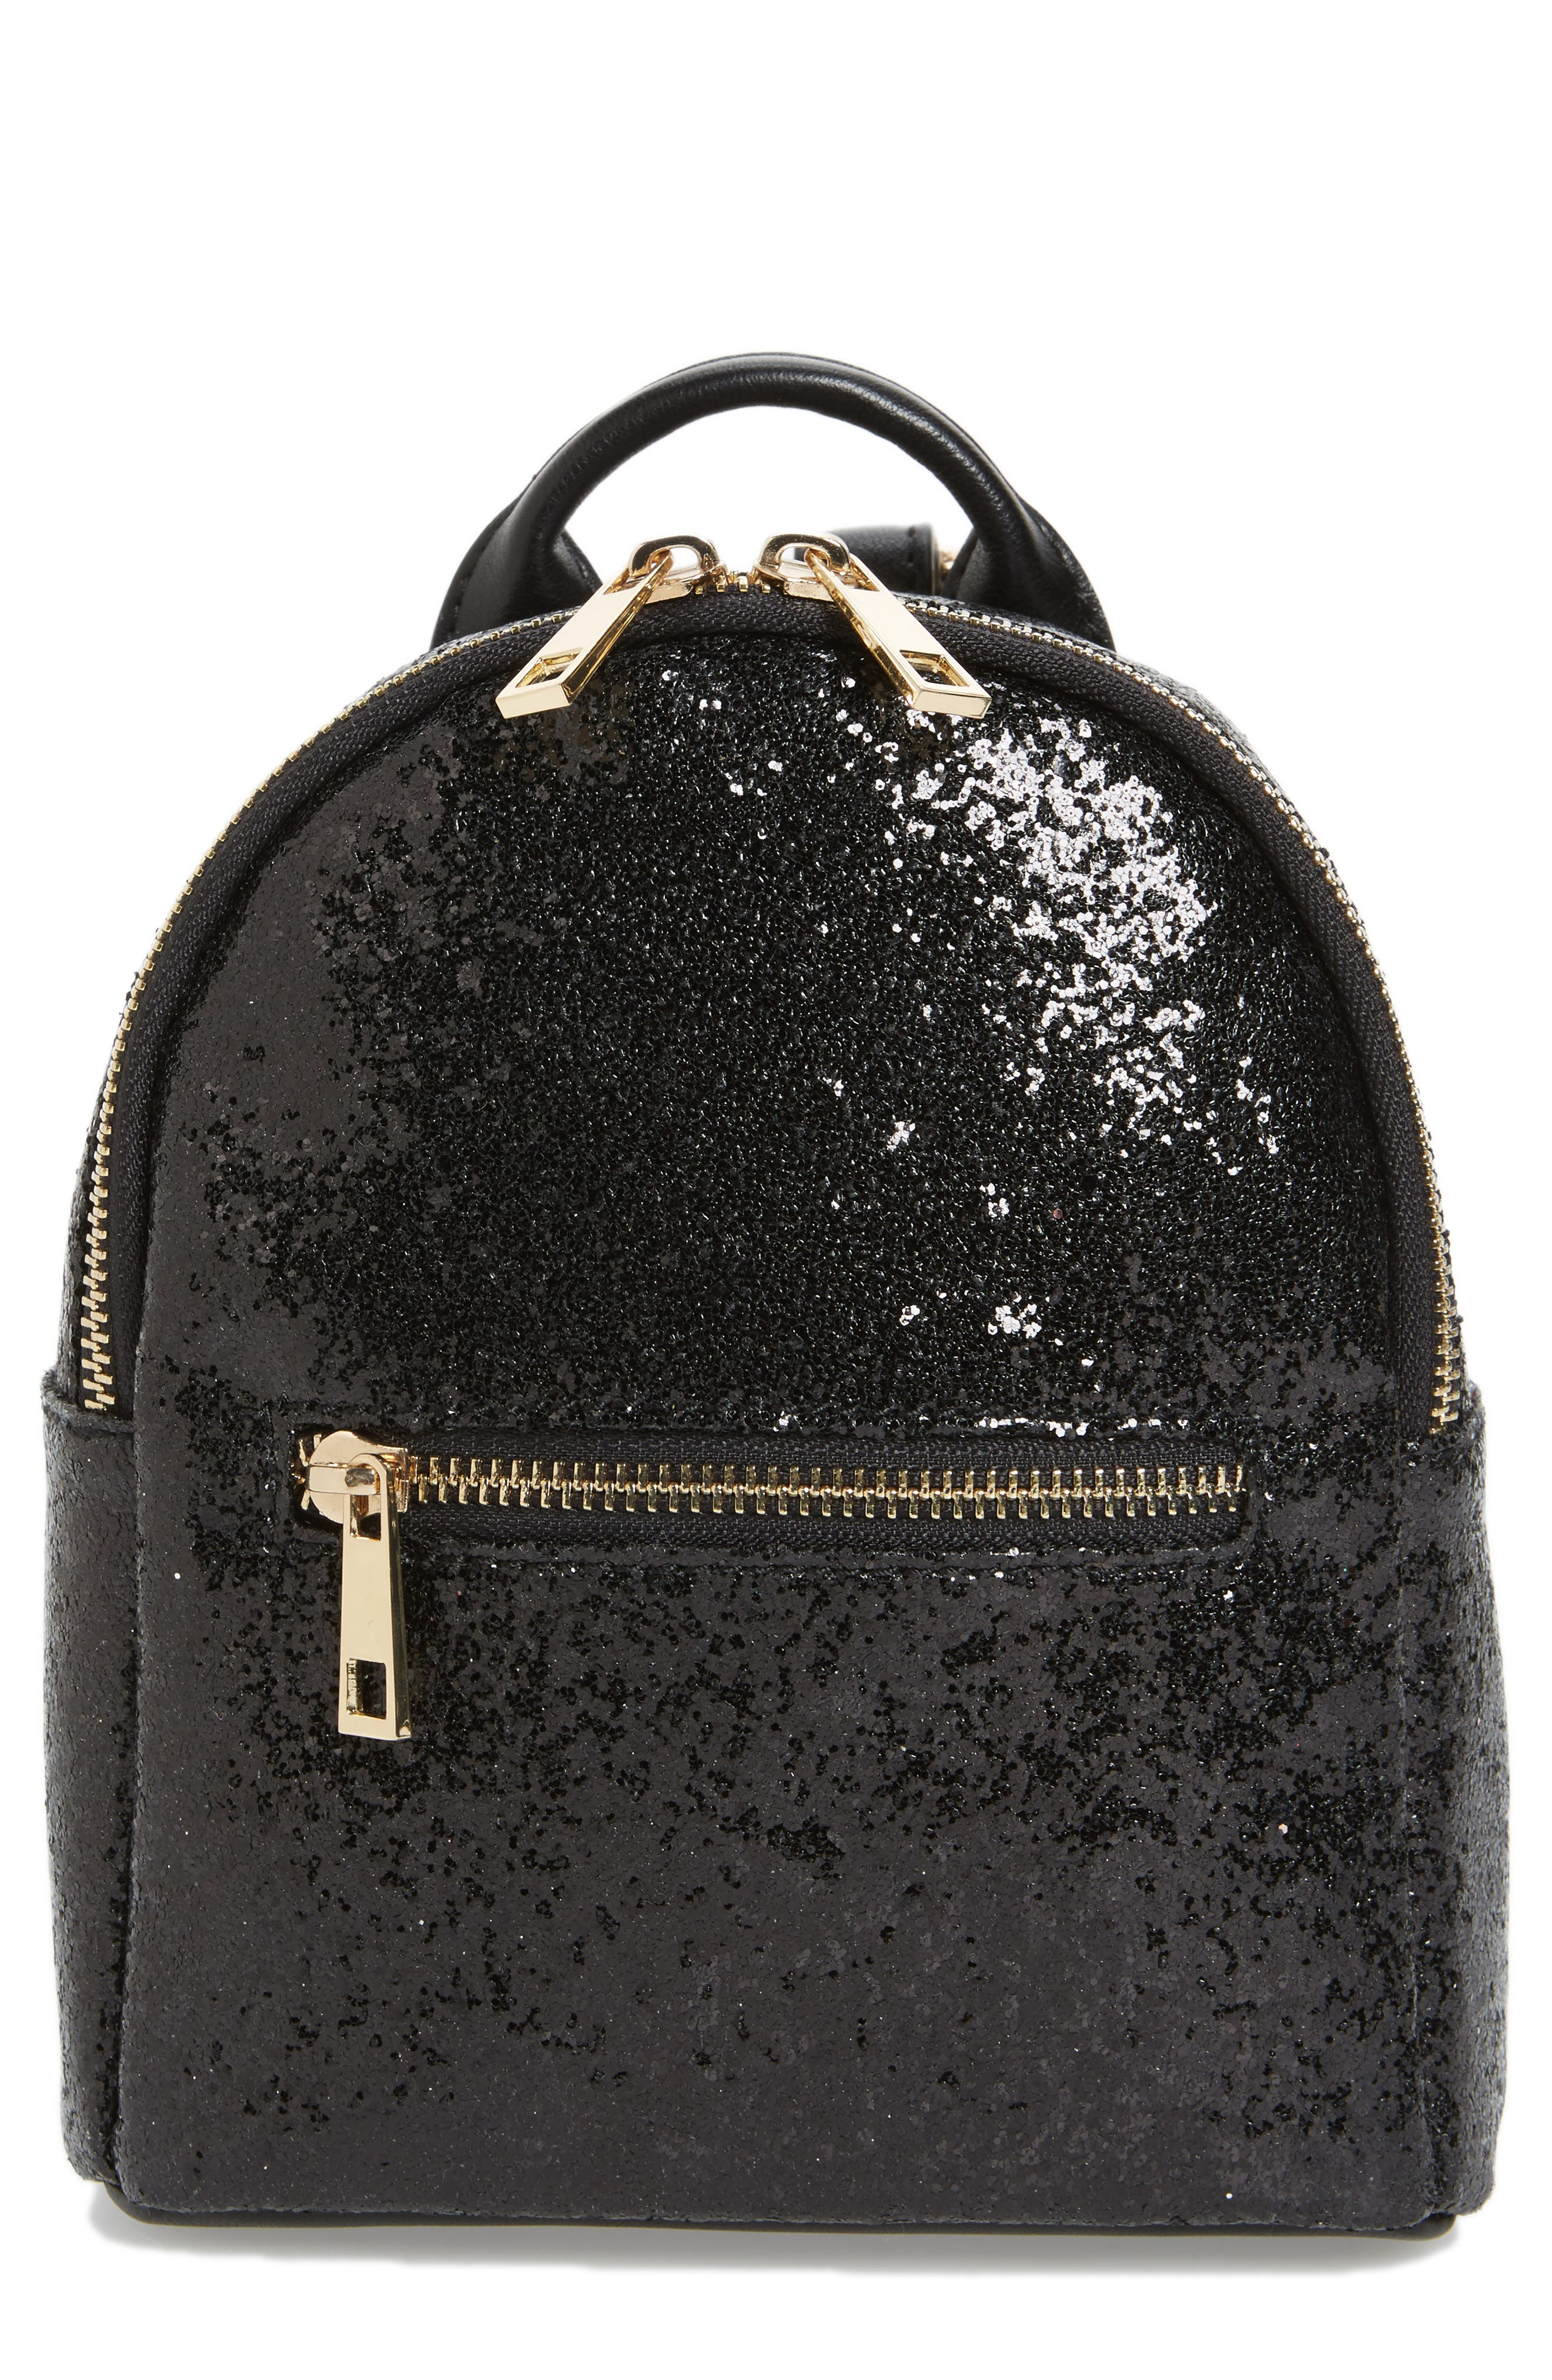 Main Image - Mali + Lili Glitter Faux Leather Backpack